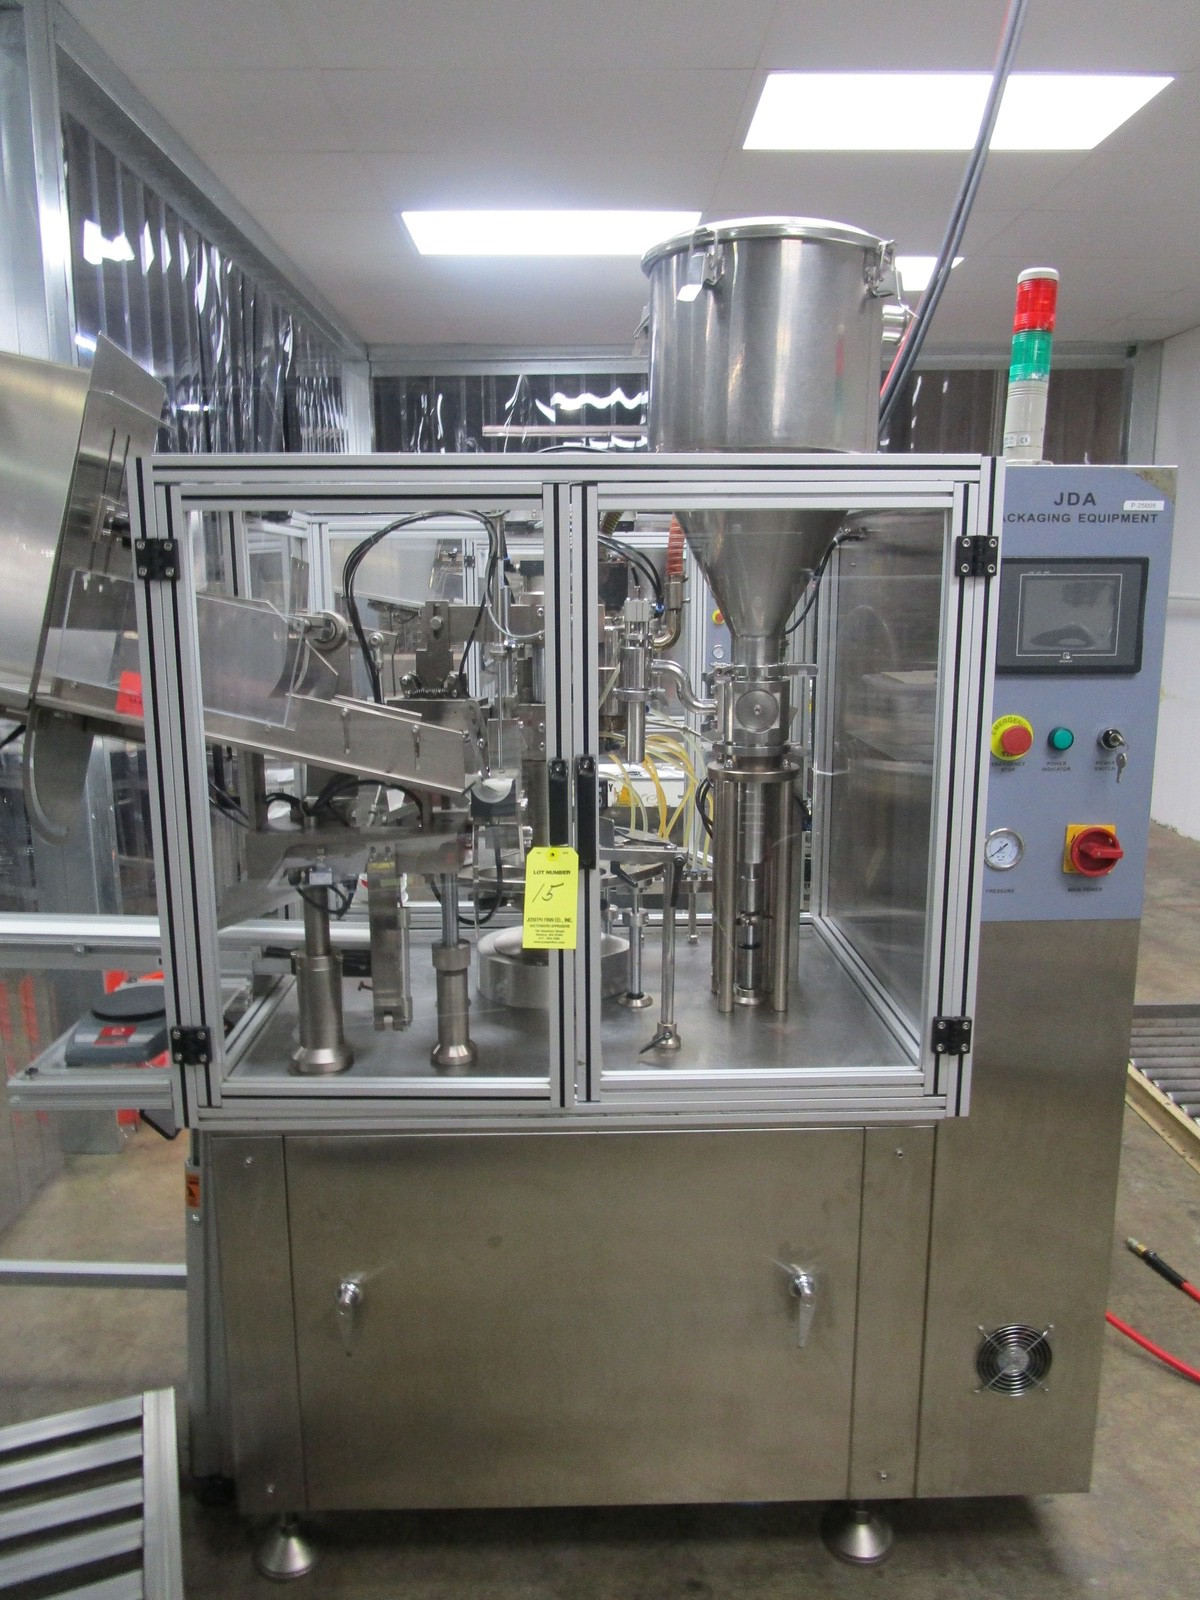 2012 JDA Packaging Equipment Super 30 Automatic 9-Pocket Hot Air Tube Filler s/n 230 | Rig Fee: $650 - Image 2 of 14